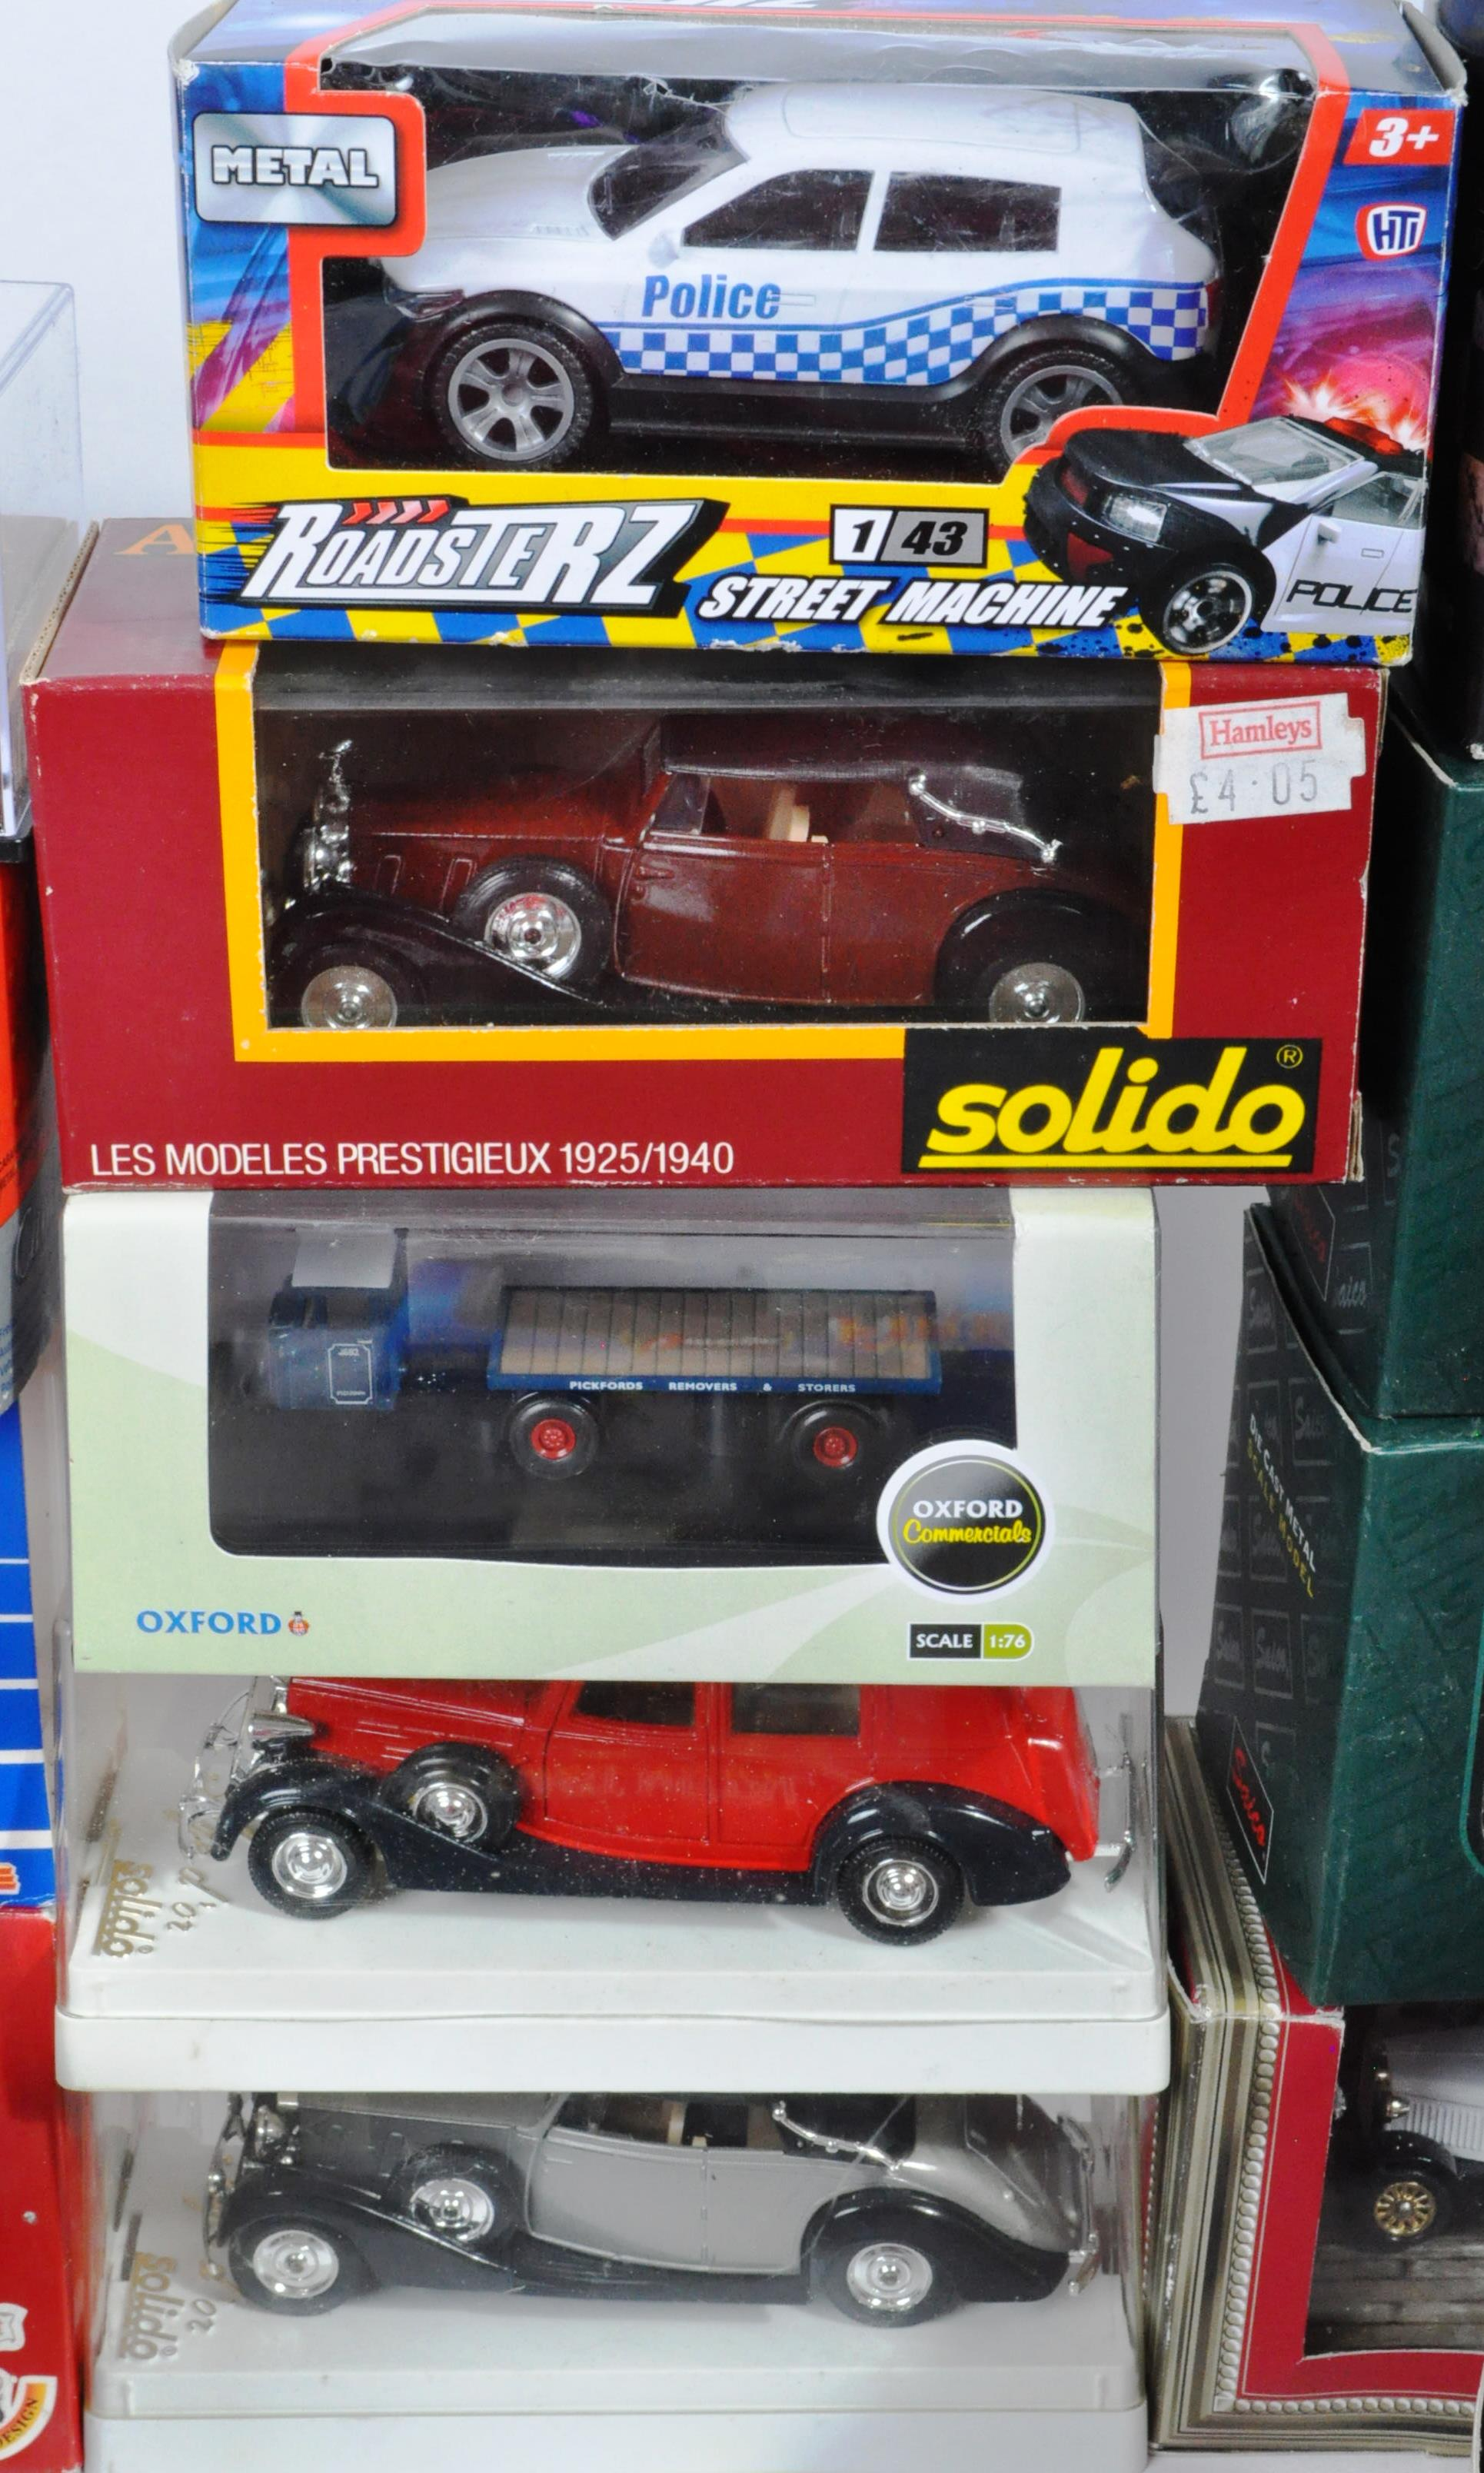 LARGE COLLECTION OF ASSORTED BOXED DIECAST MODEL CARS - Image 12 of 13